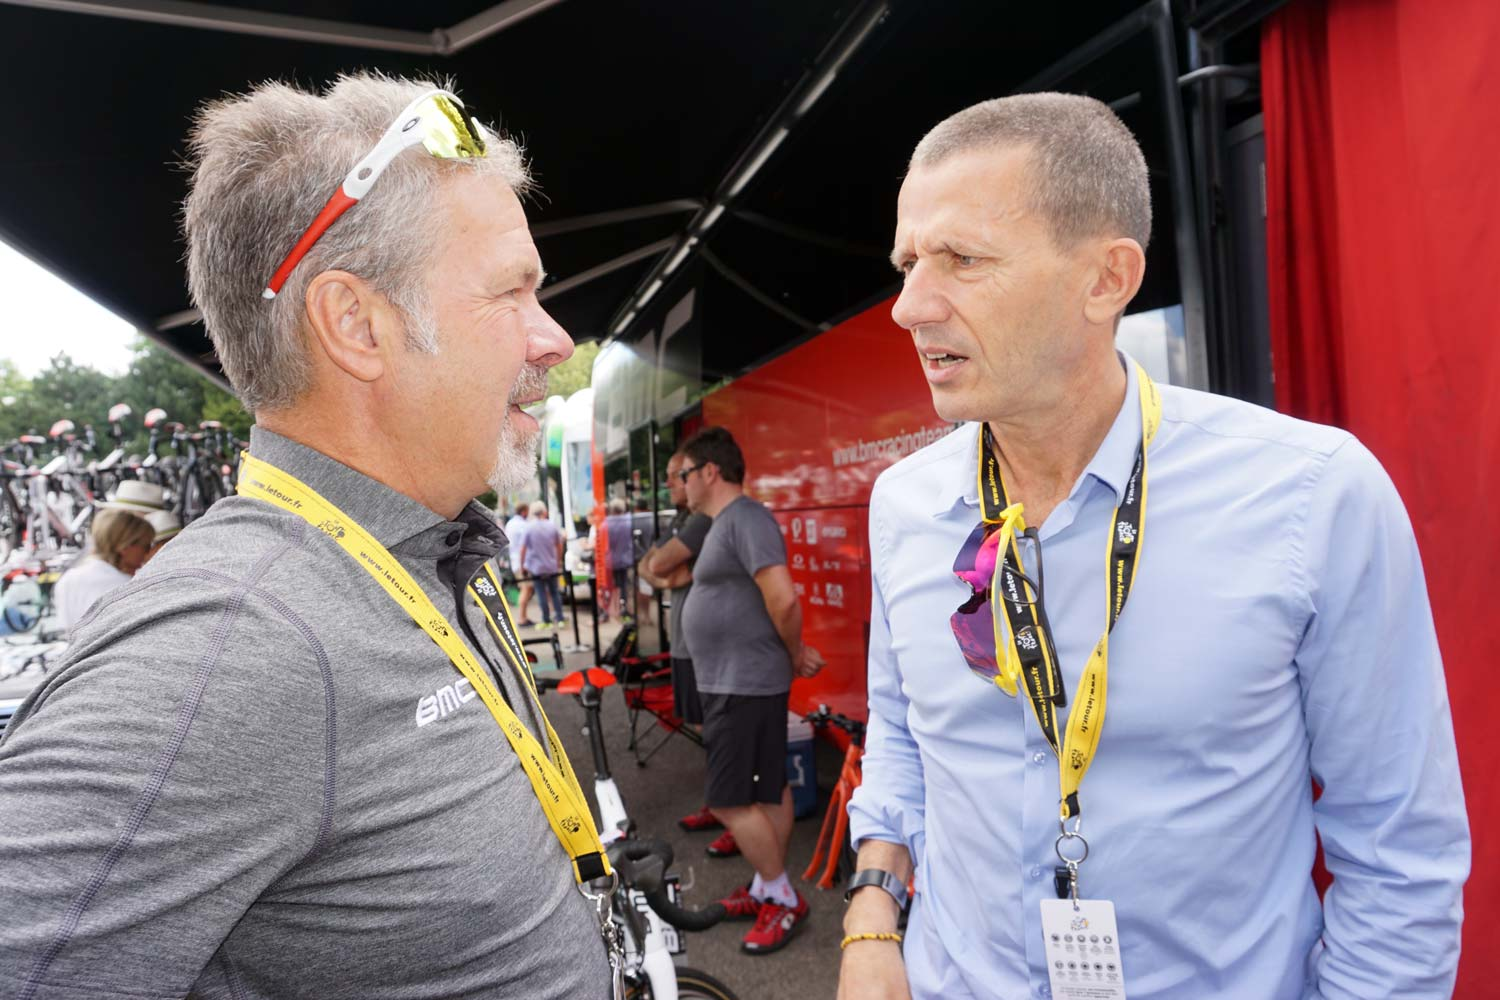 Jim Ochowicz and the CEO of ASO, Yann Le Moenner, at the Tour de France in 2016.